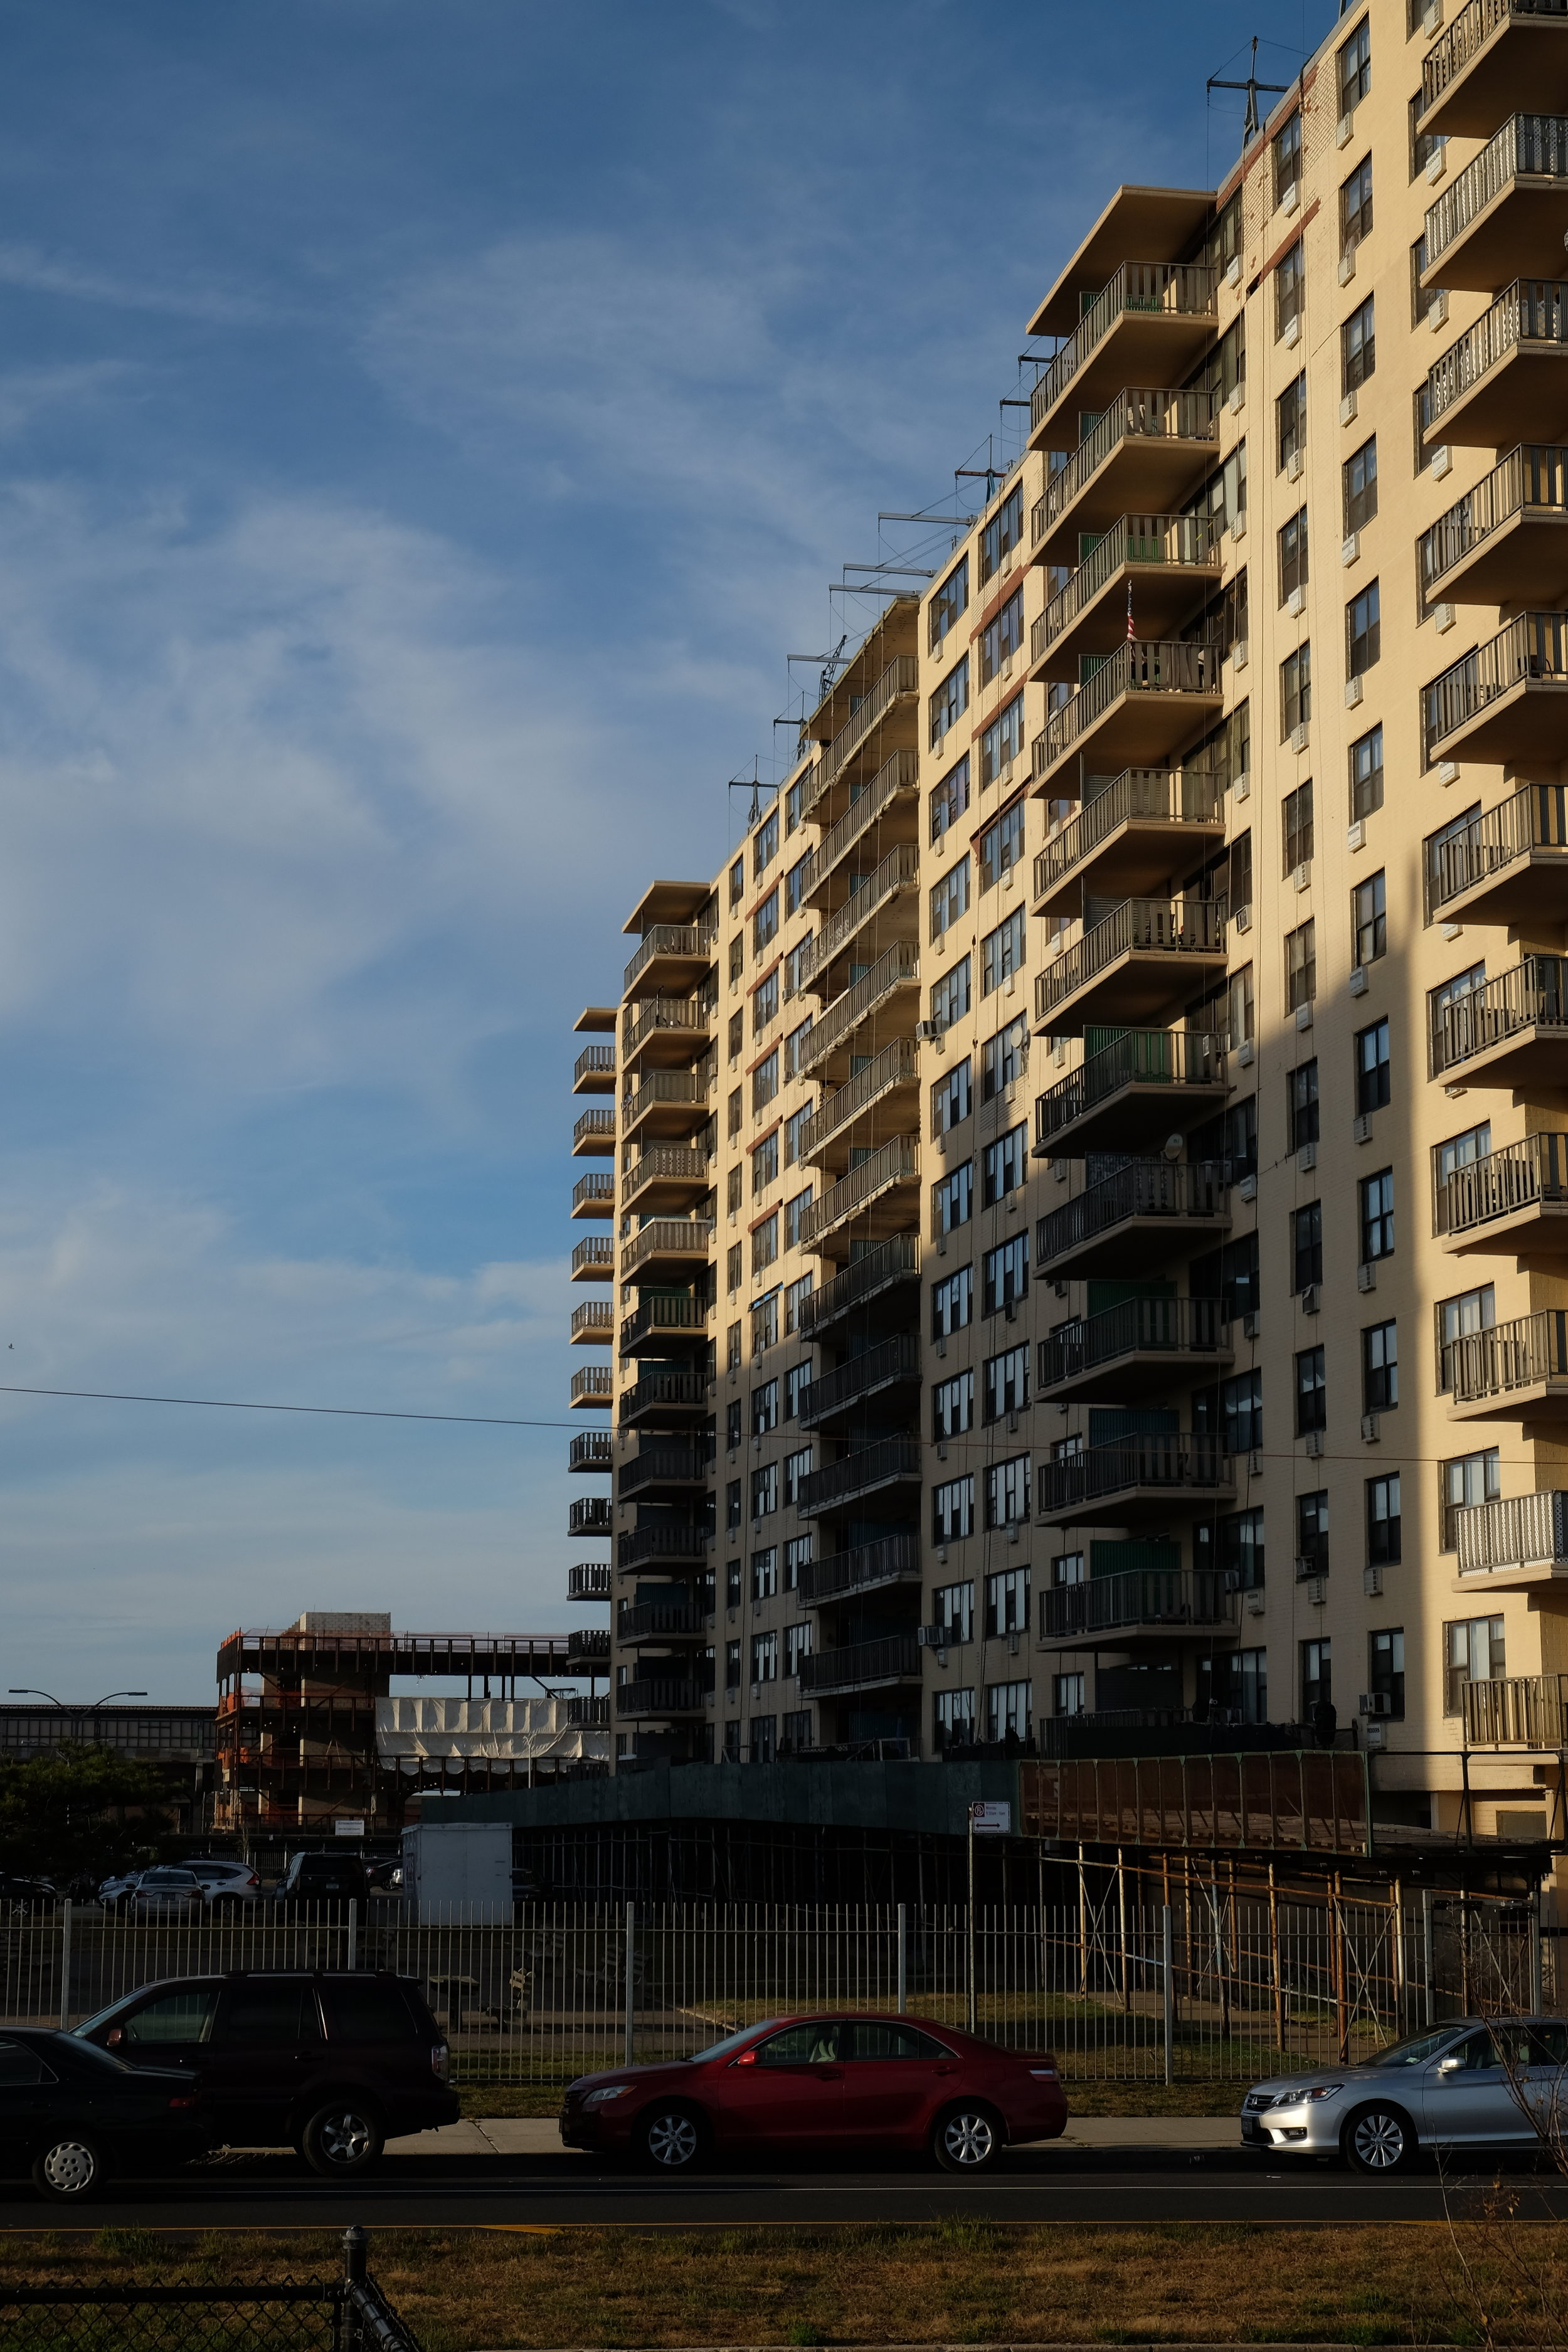 Rockaways - High-Rises